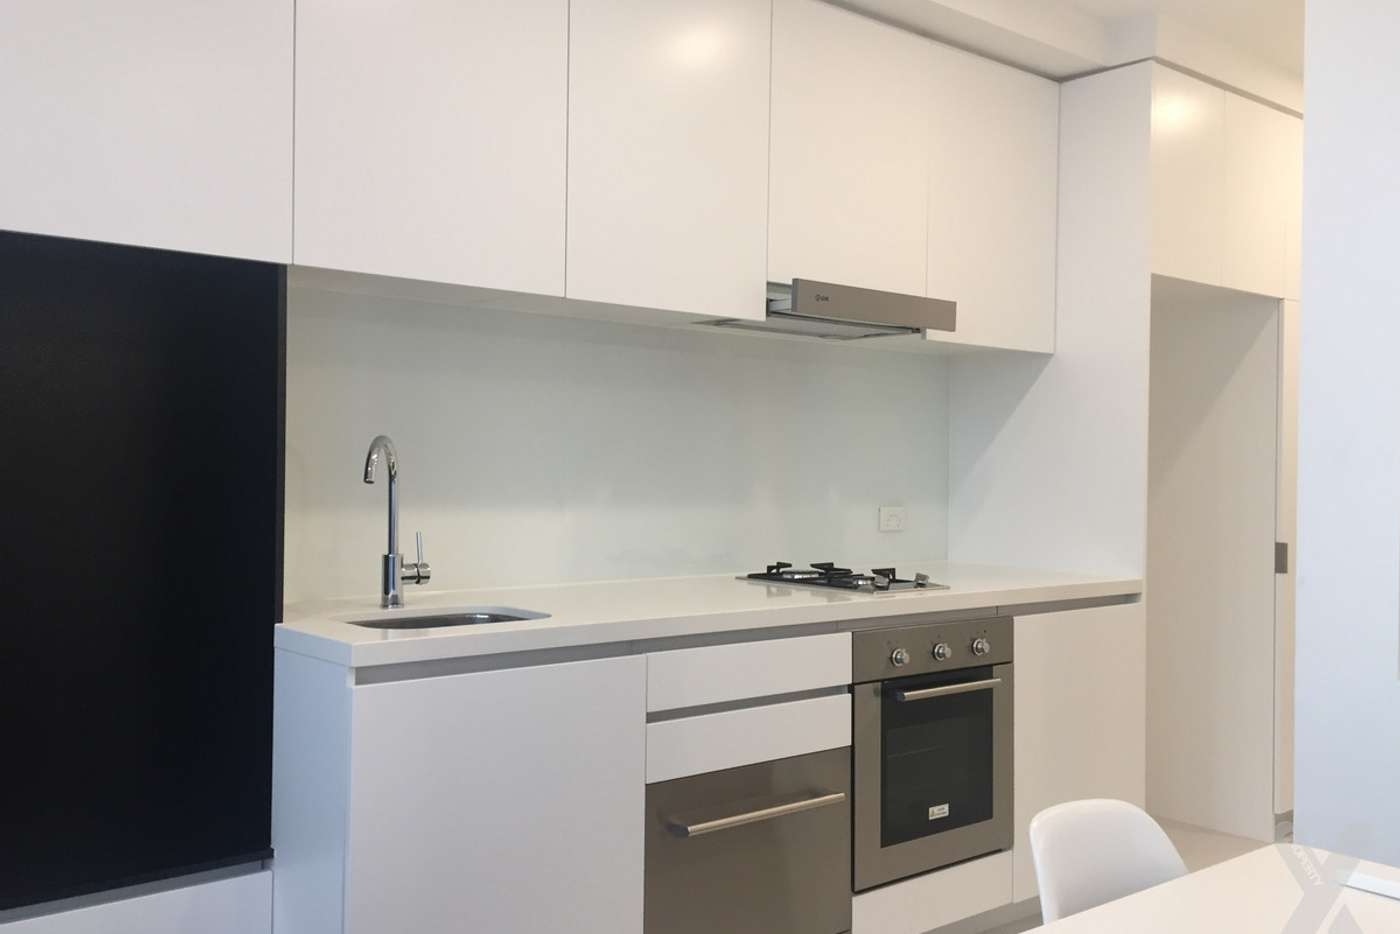 Main view of Homely apartment listing, 307/135 Roden Street, West Melbourne VIC 3003